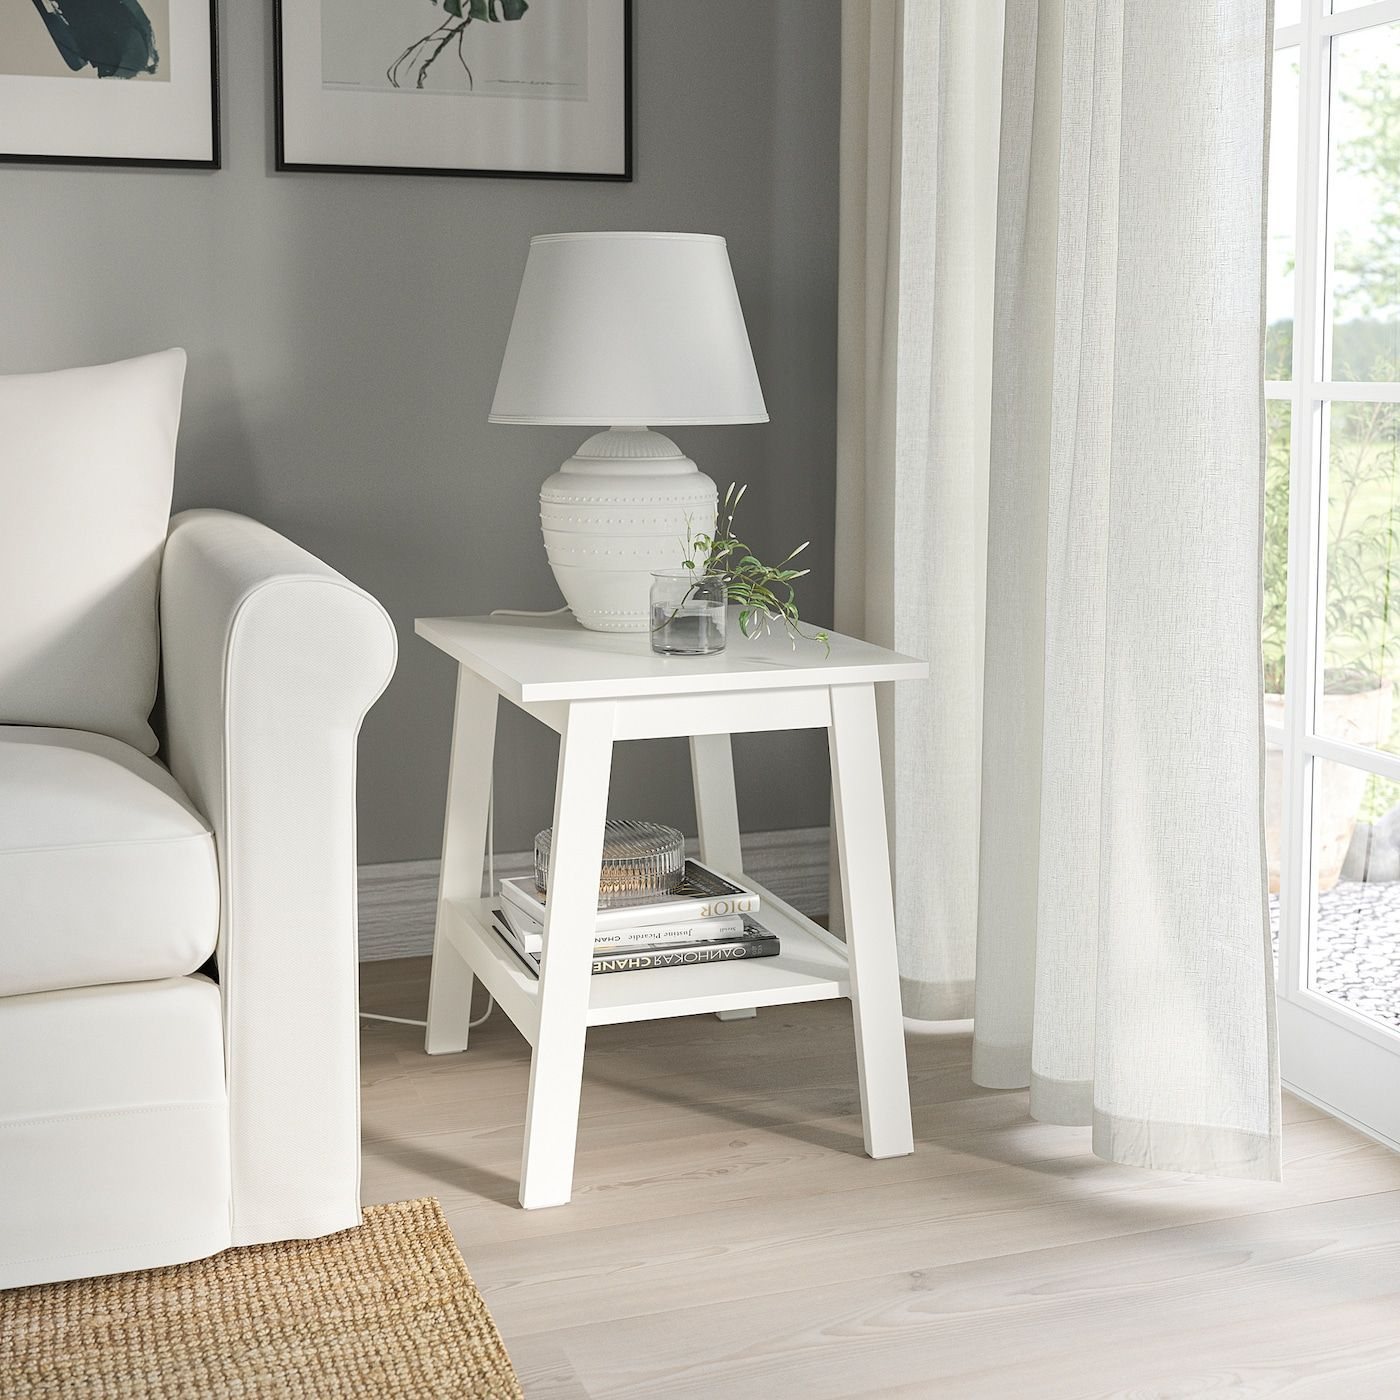 Ikea Lunnarp White Side Table 252834966568651952 White Side Tables White Side Table Living Room Side Table Decor Bedroom [ 1400 x 1400 Pixel ]